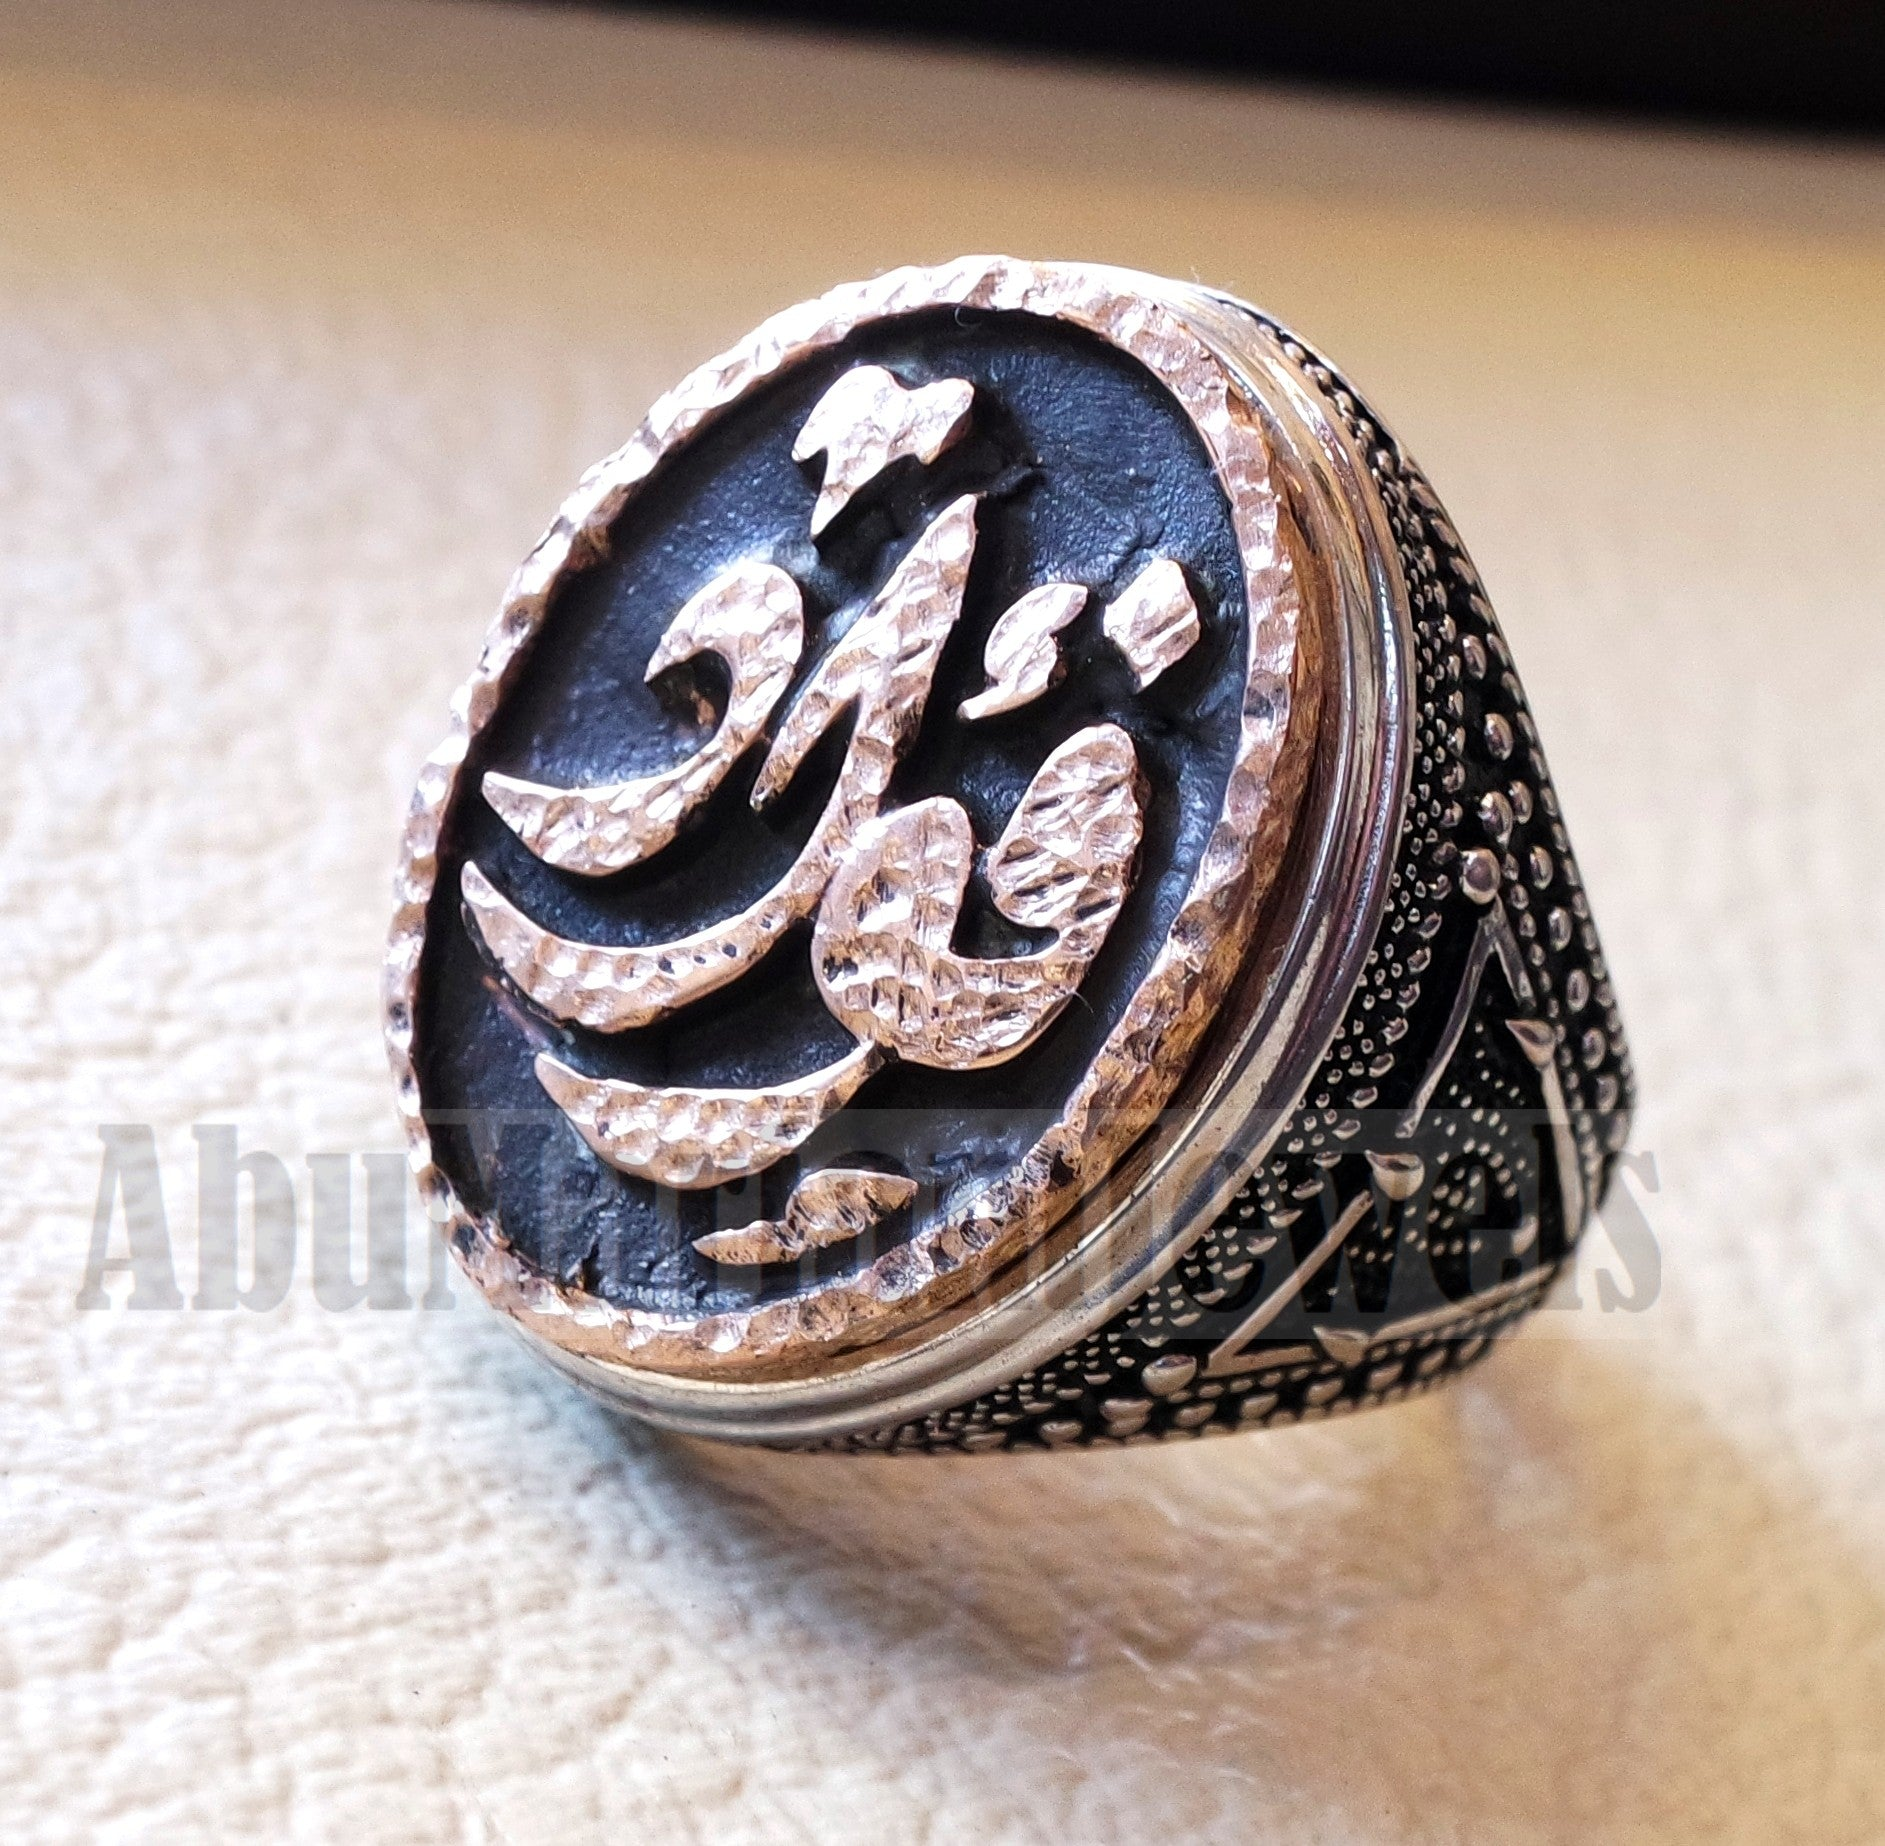 Customized Arabic calligraphy names ring personalized antique jewelry style sterling silver 925 and bronze any size TSB1004 خاتم اسم تفصيل